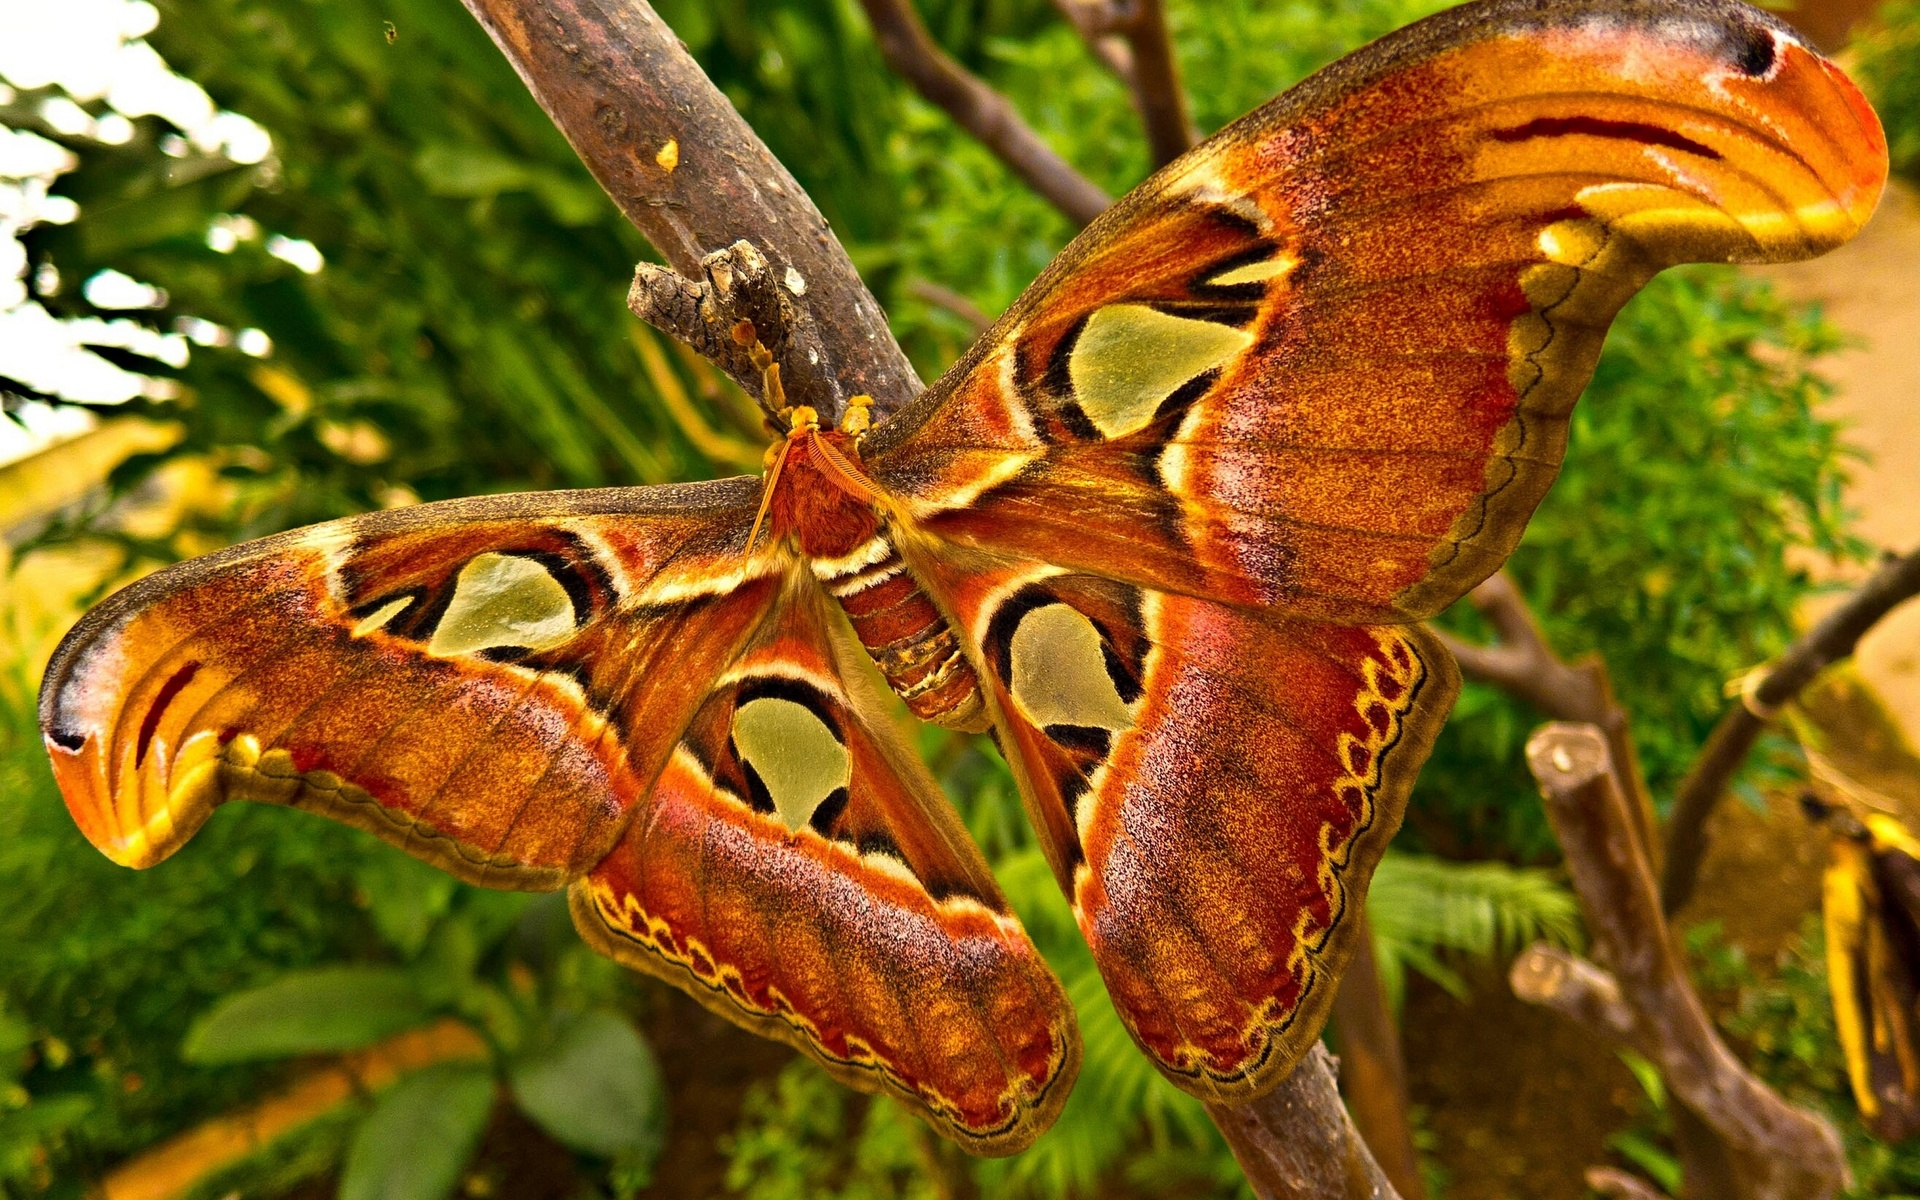 rainforest animals and insects 31 cool hd wallpaper listtoday